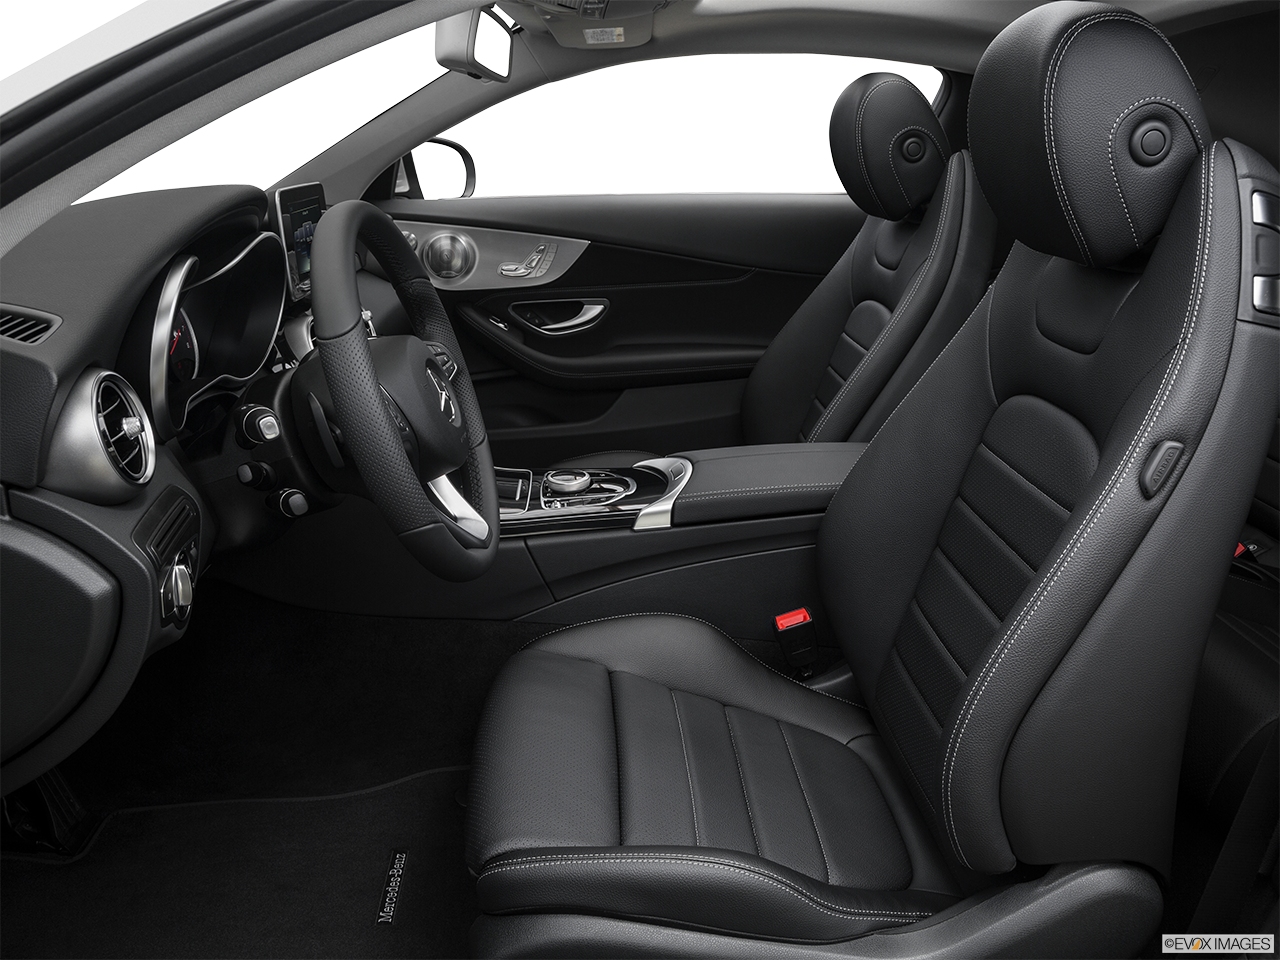 Research The 2017 Mercedes-Benz C300 Coupe in Shrewsbury